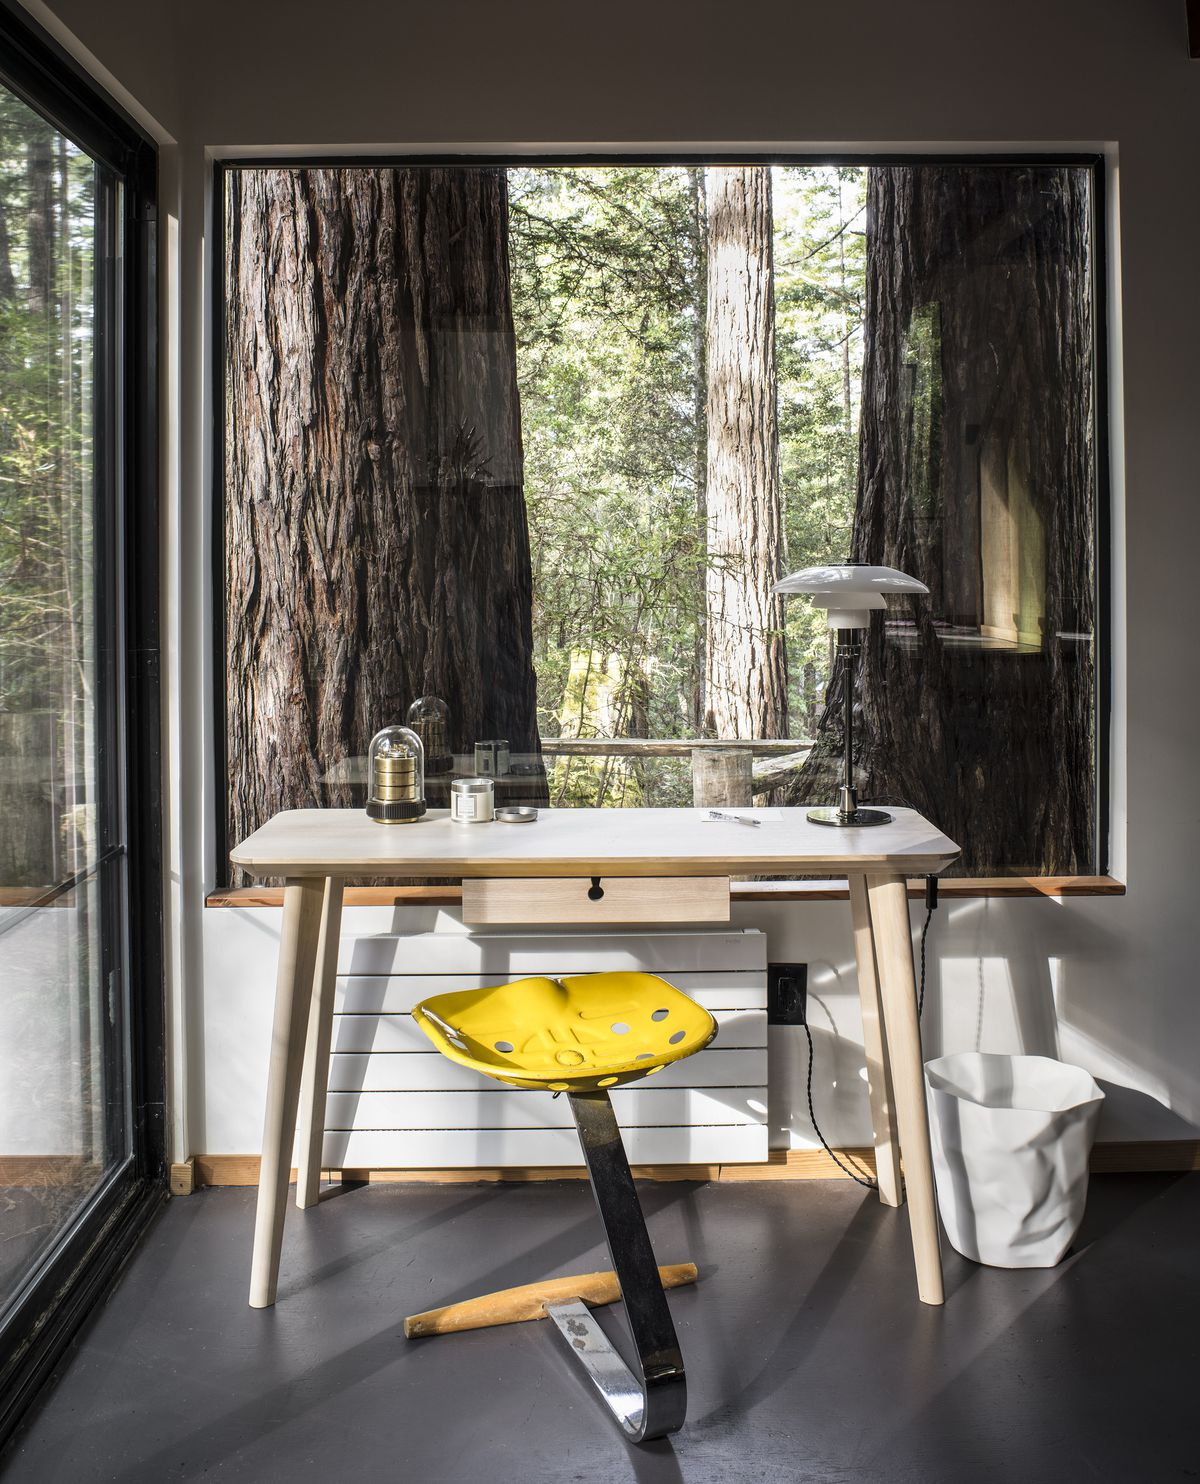 A light-colored wood desk sits in a corner. It has a modern desk lamp and a yellow-and-chrome stool with a metal tractor seat.